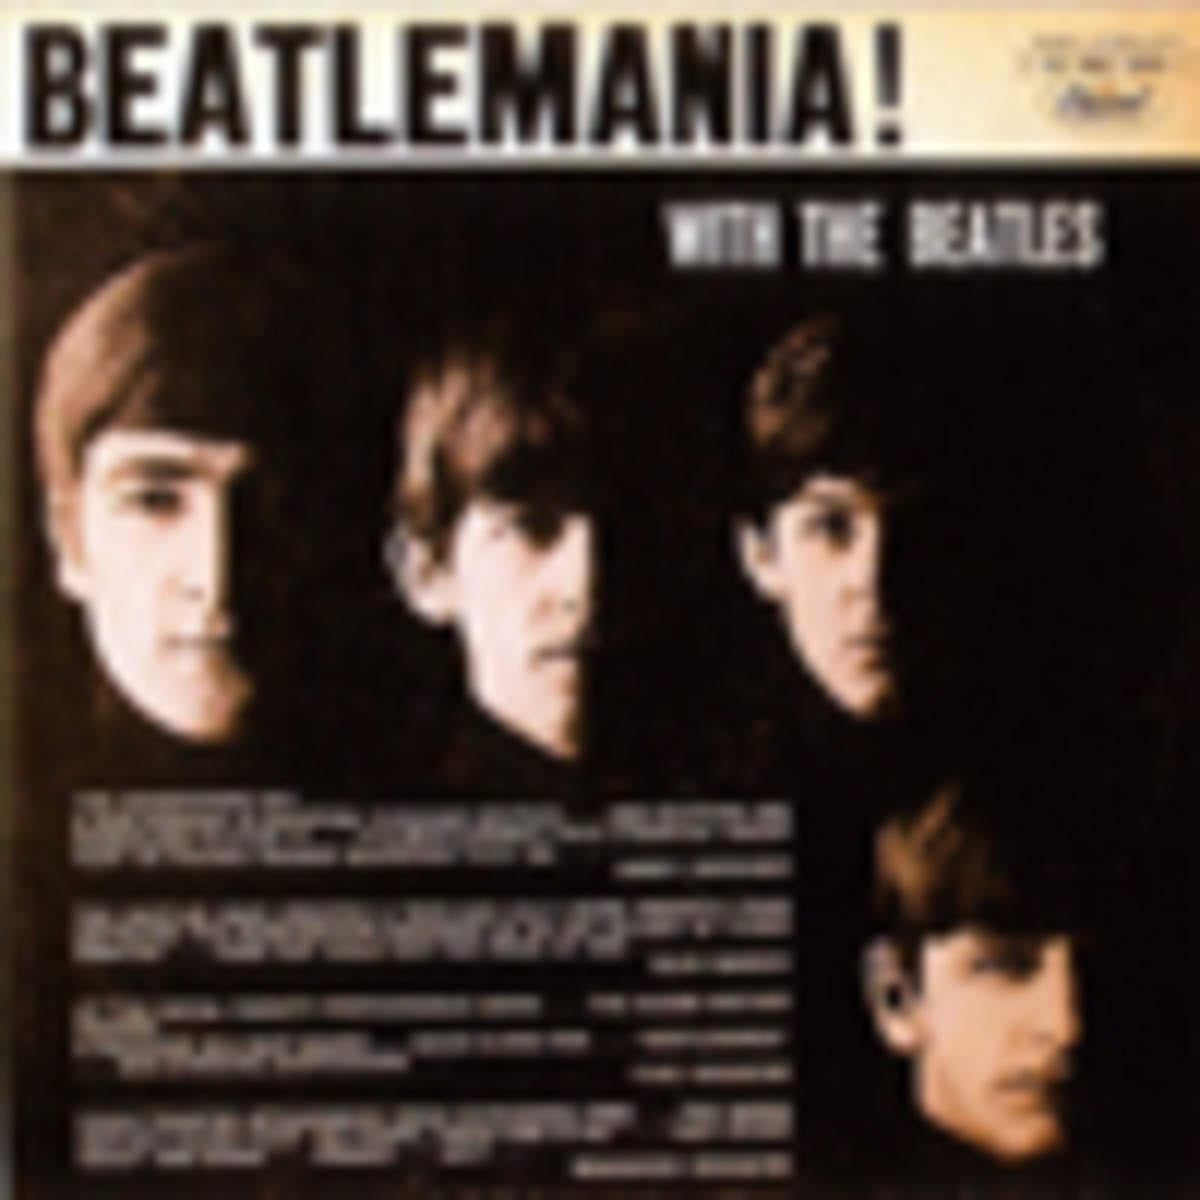 The Beatles Beatlemania With The Beatles